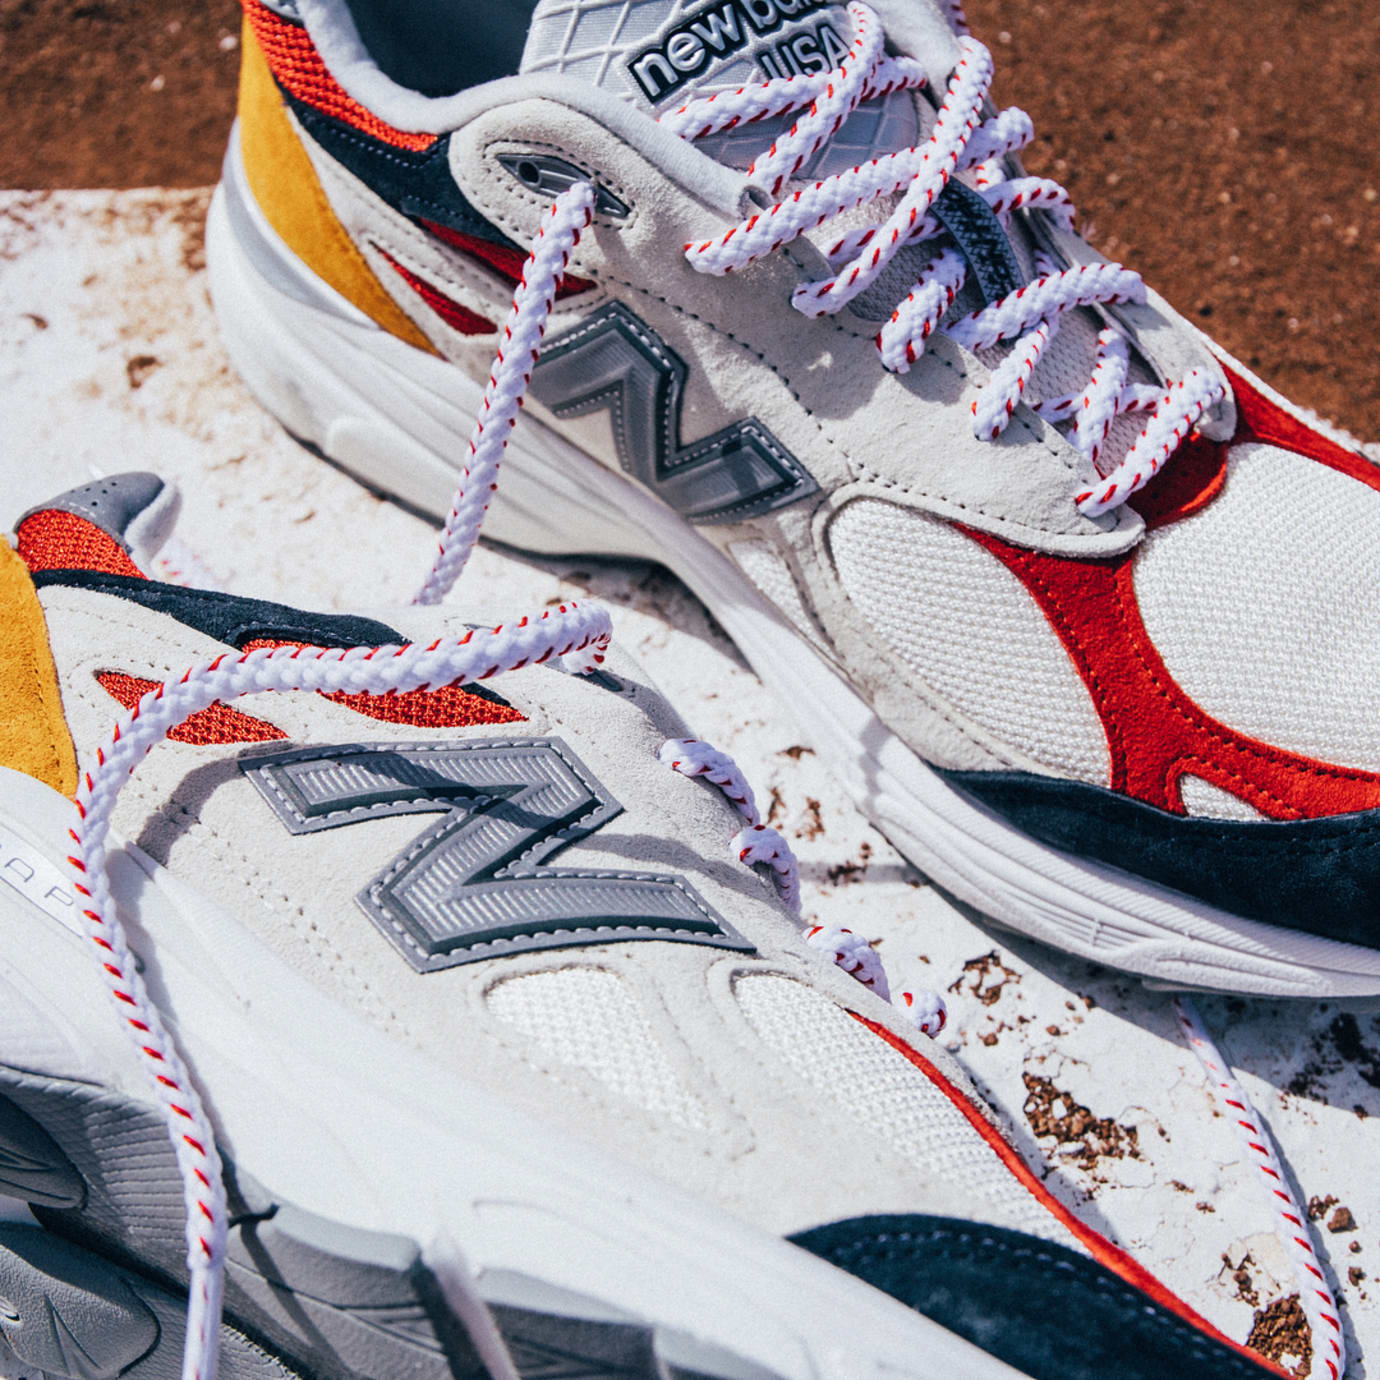 reputable site bf984 a09a8 DTLR Villa x New Balance 990v3 'Navy Yard' Release Date ...